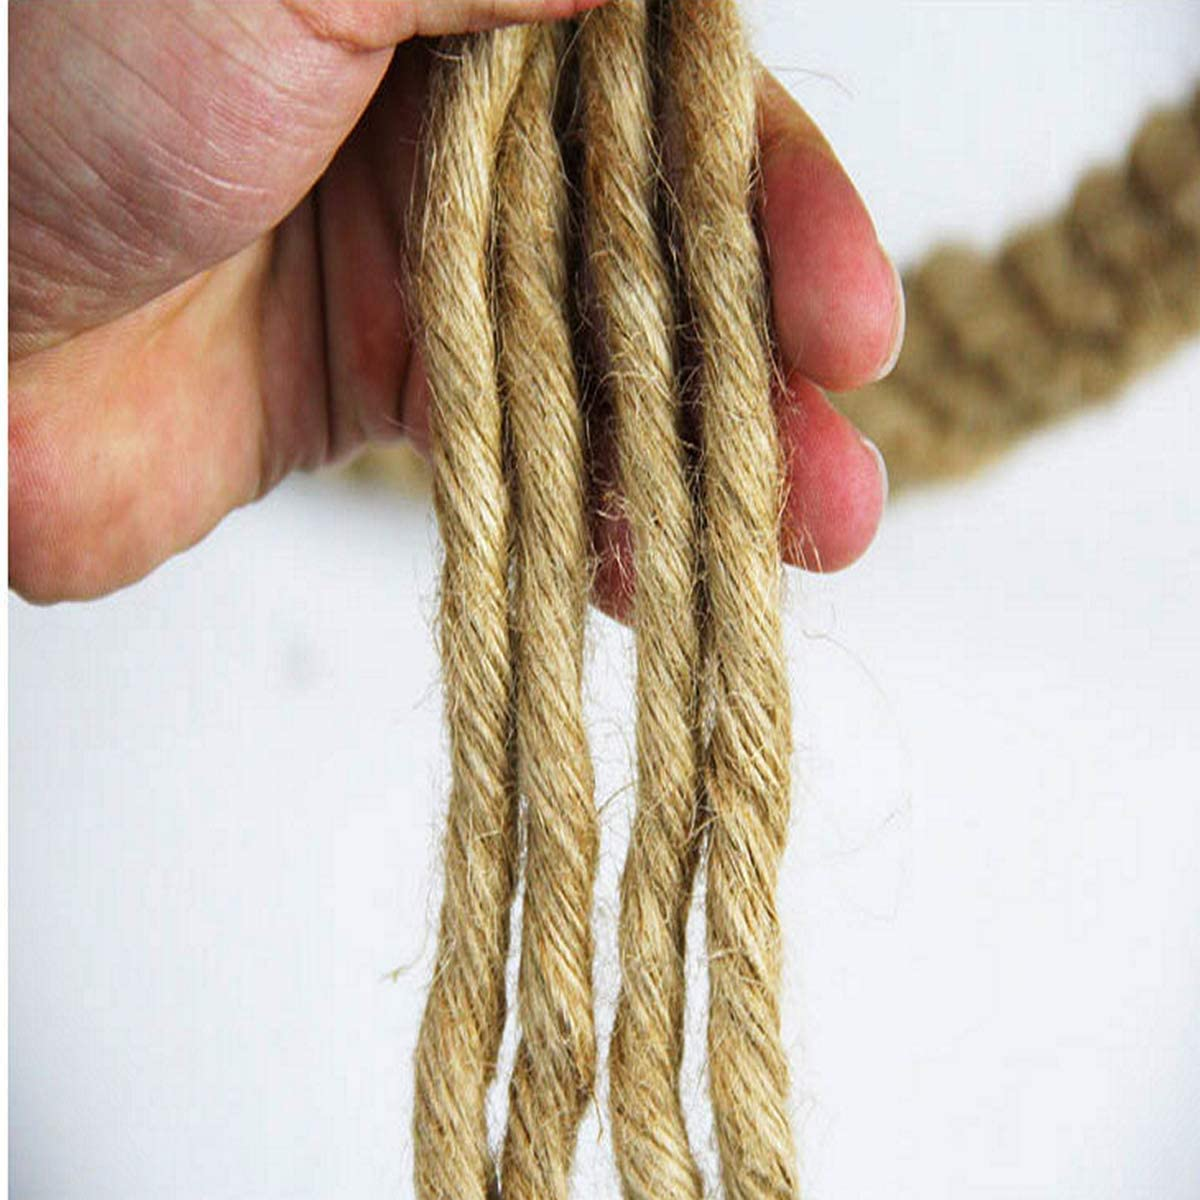 Twisted Manila Rope Jute Rope 3//4 in x 50 ft Natural Thick Hemp Rope for Crafts Hammock Home Decorating Landscaping Railings